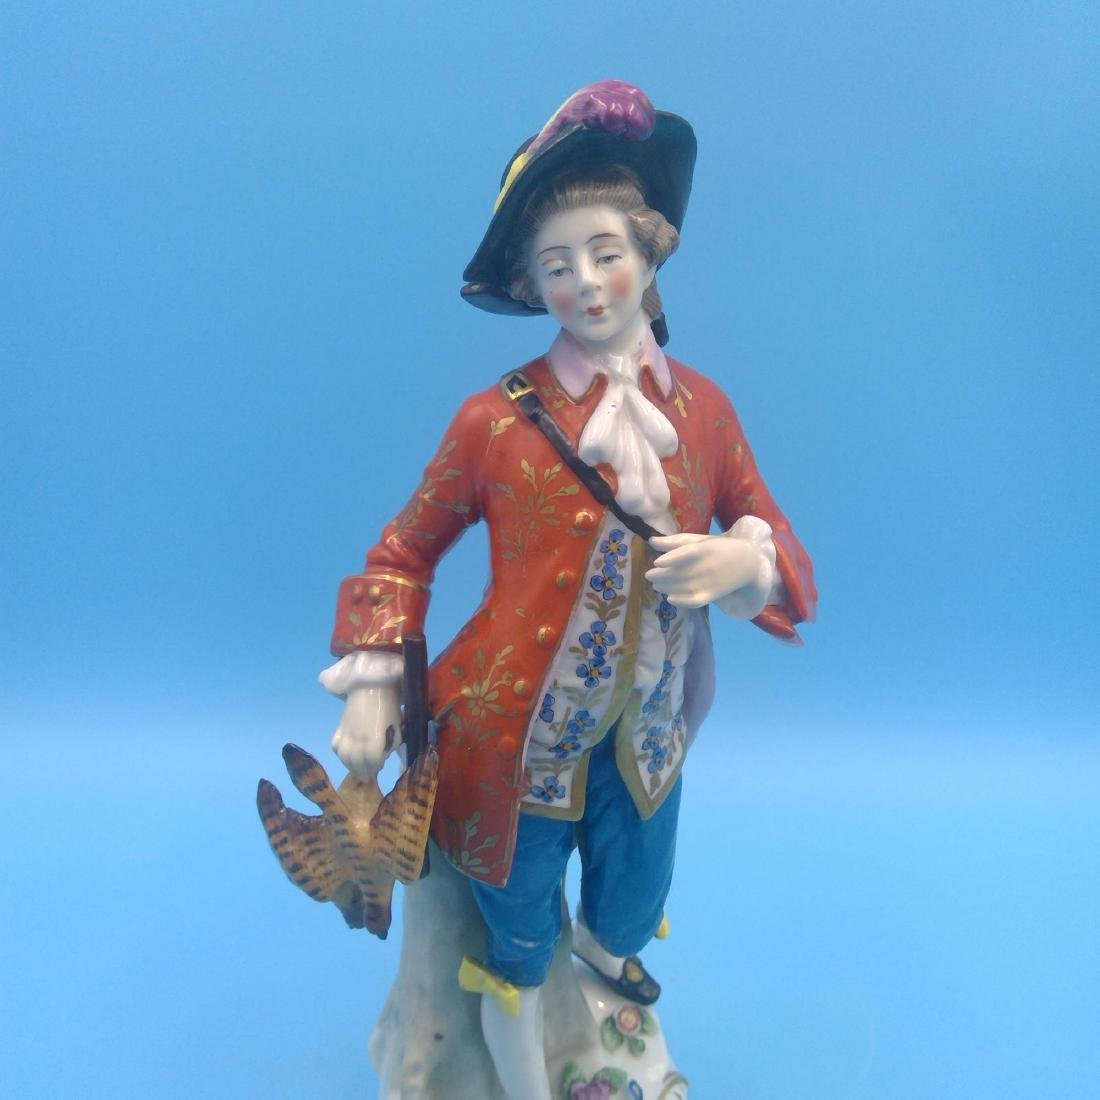 GROUP OF 3 CHELSEA 18thC ENGLISH PORCELAIN FIGURES - 6